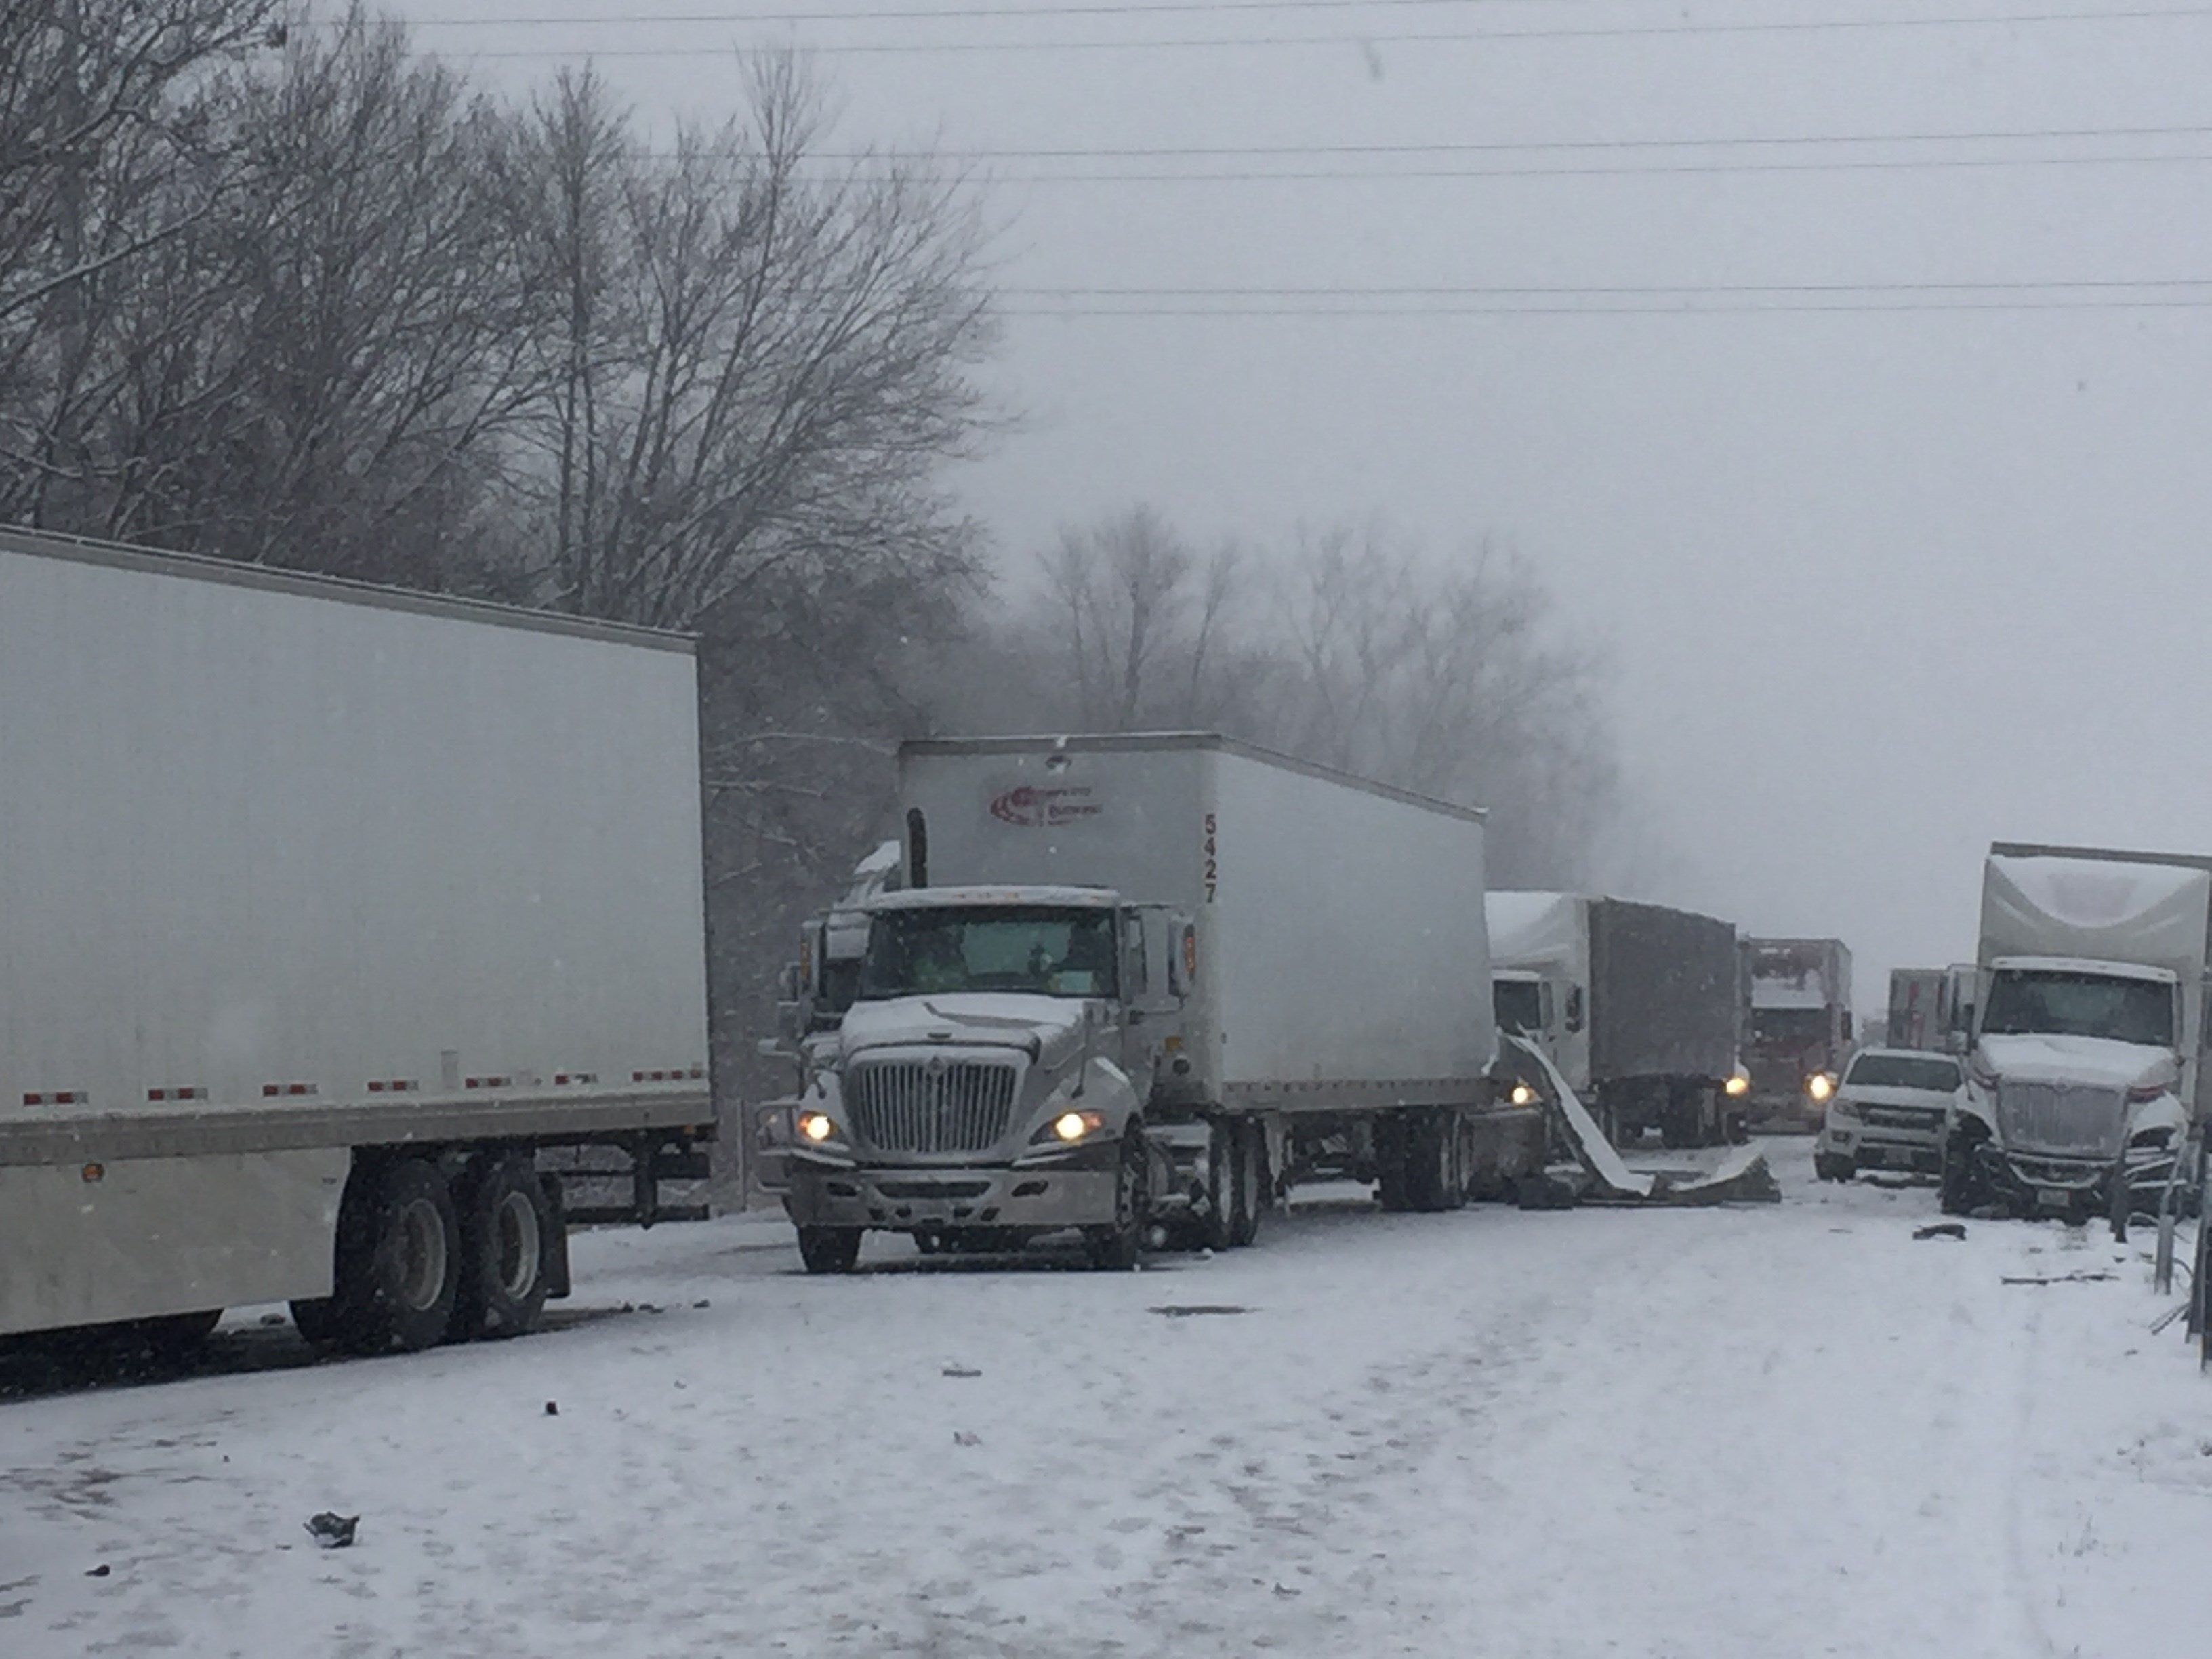 More Than 2-Dozen Vehicles Involved In Pileup On I-94